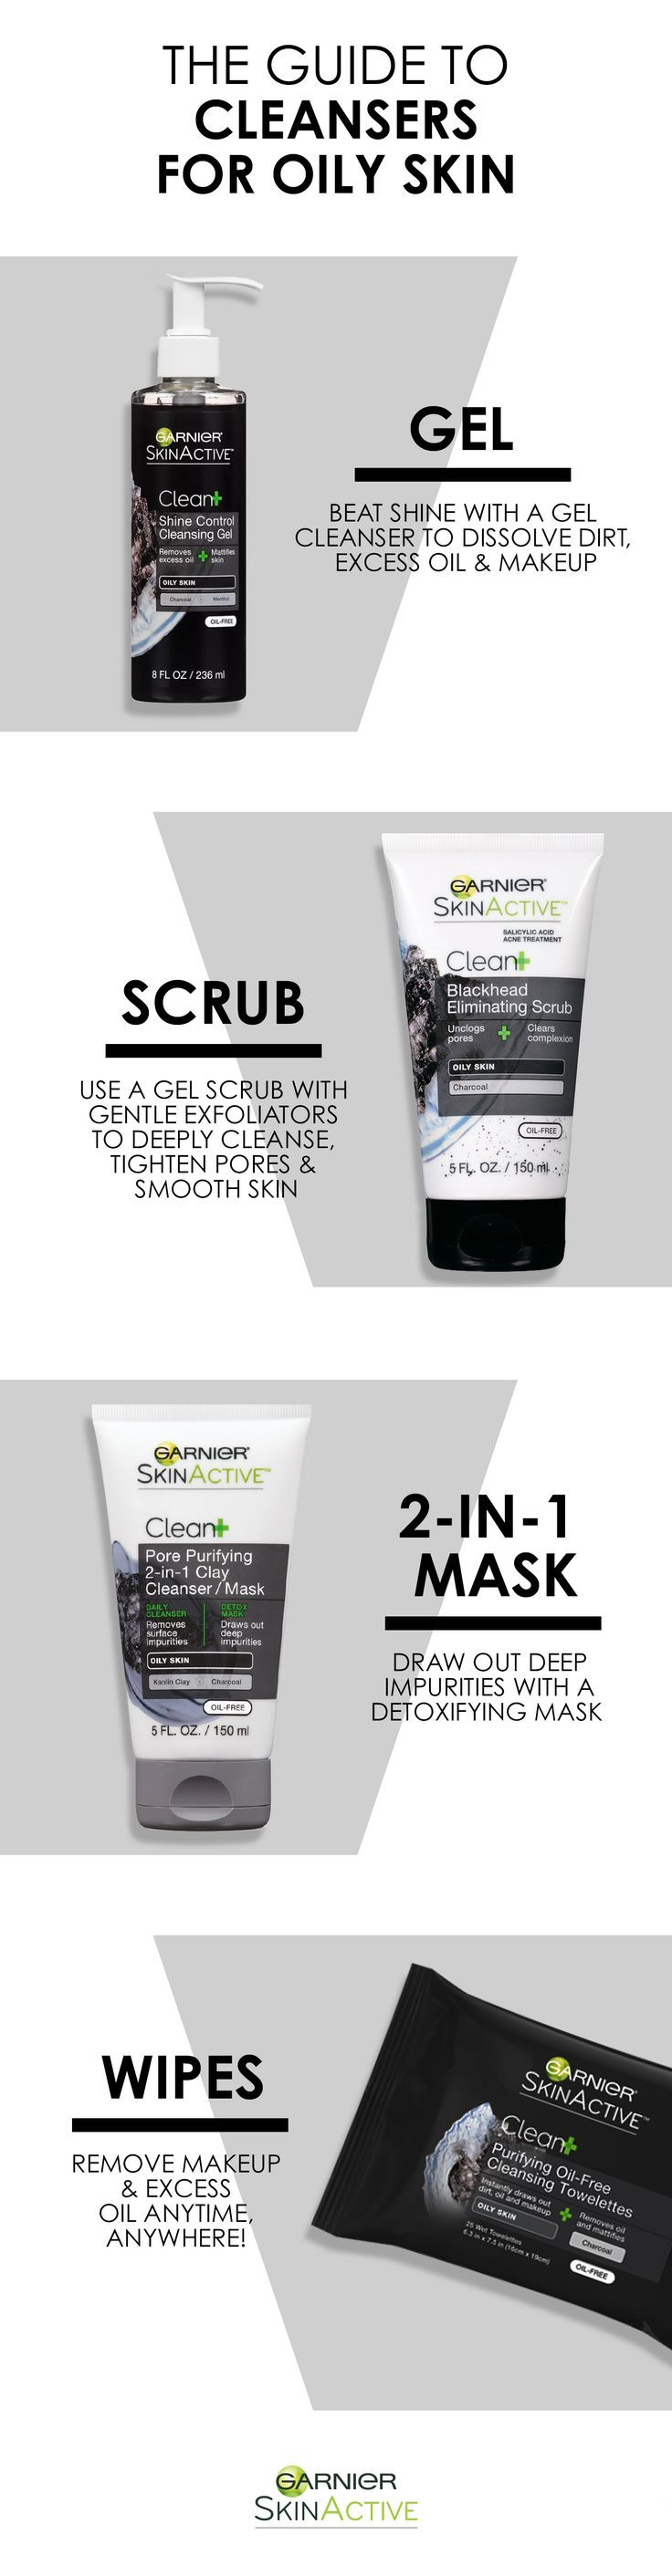 The ultimate guide to cleansers for oily skin. Garnier SkinActive has tons of cleansers for every skin type, but these are some of the best ones to beat shine, and tighten pores in every format. 1. Gel wash to mattify skin 2. exfoliating scrub with salicylic acid to deeply cleanse and shrink pores. 3. Duo charcoal clay mask to draw out oil and detoxify. 4. Charcoal-infused wipes to remove makeup and banish oil on the go!  Check them all out at GarnierUSA.com